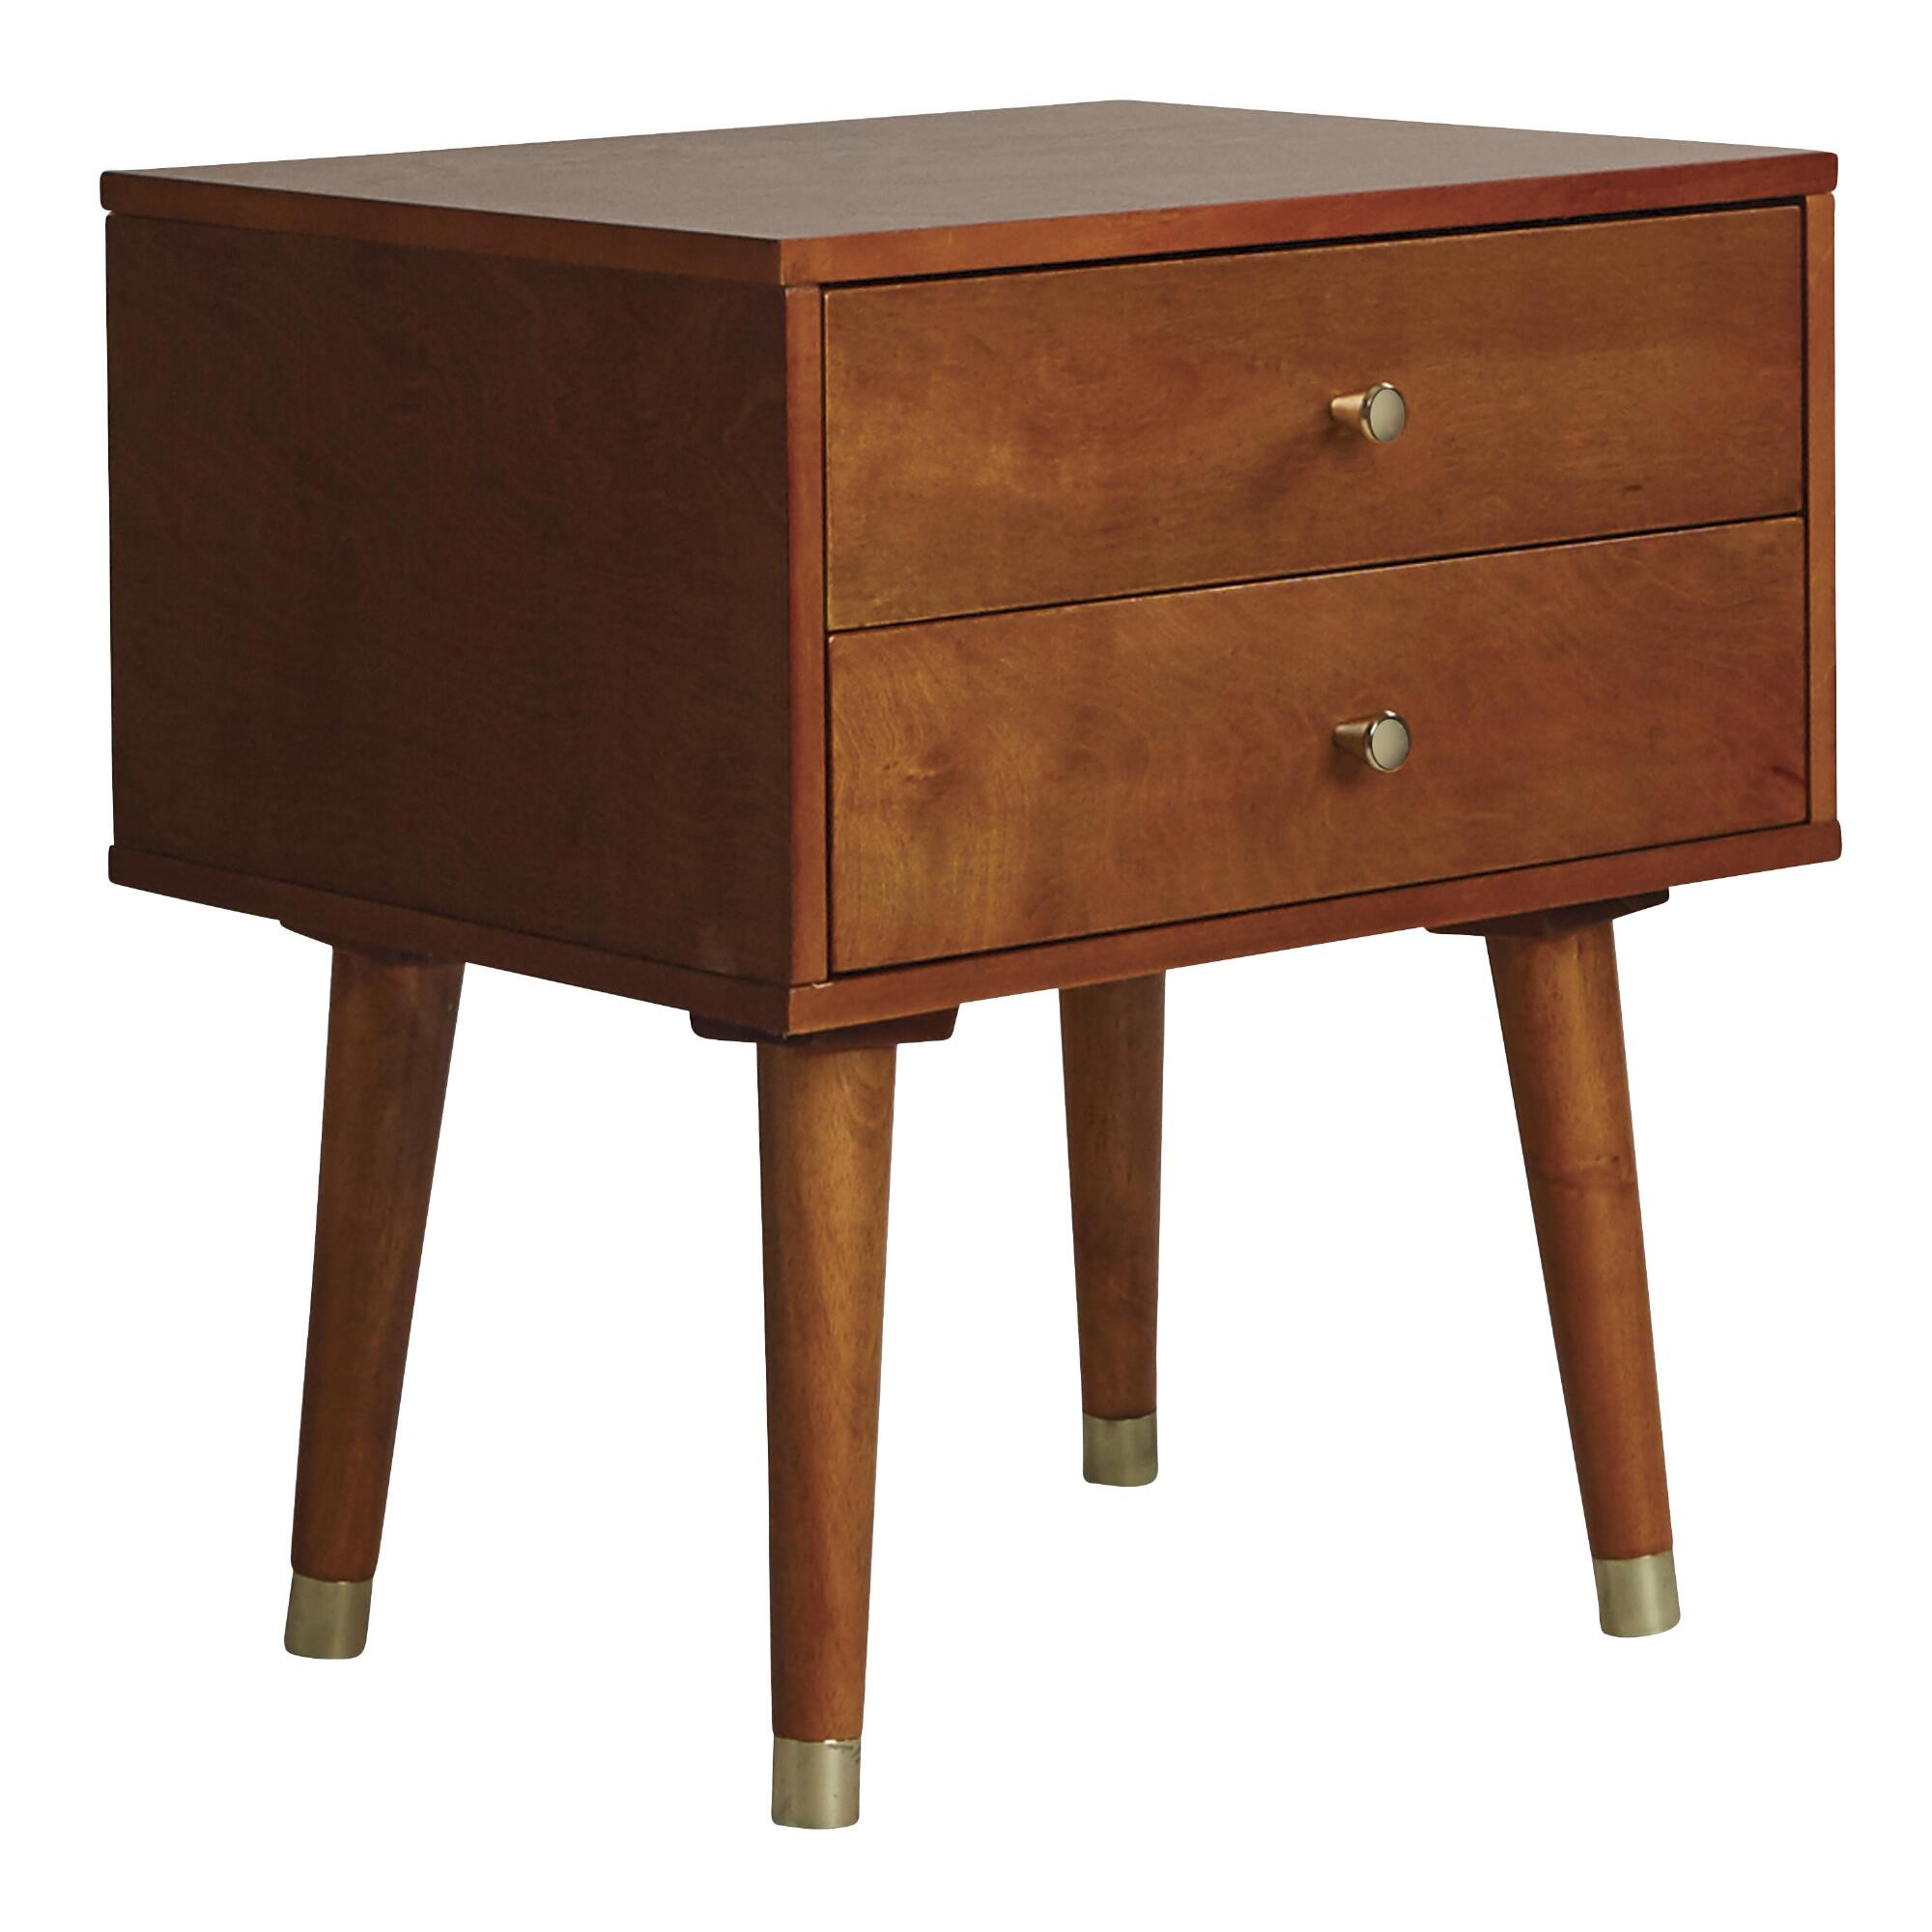 End table with drawer - Light Walnut Wood Caleb 2 Drawer Accent Table